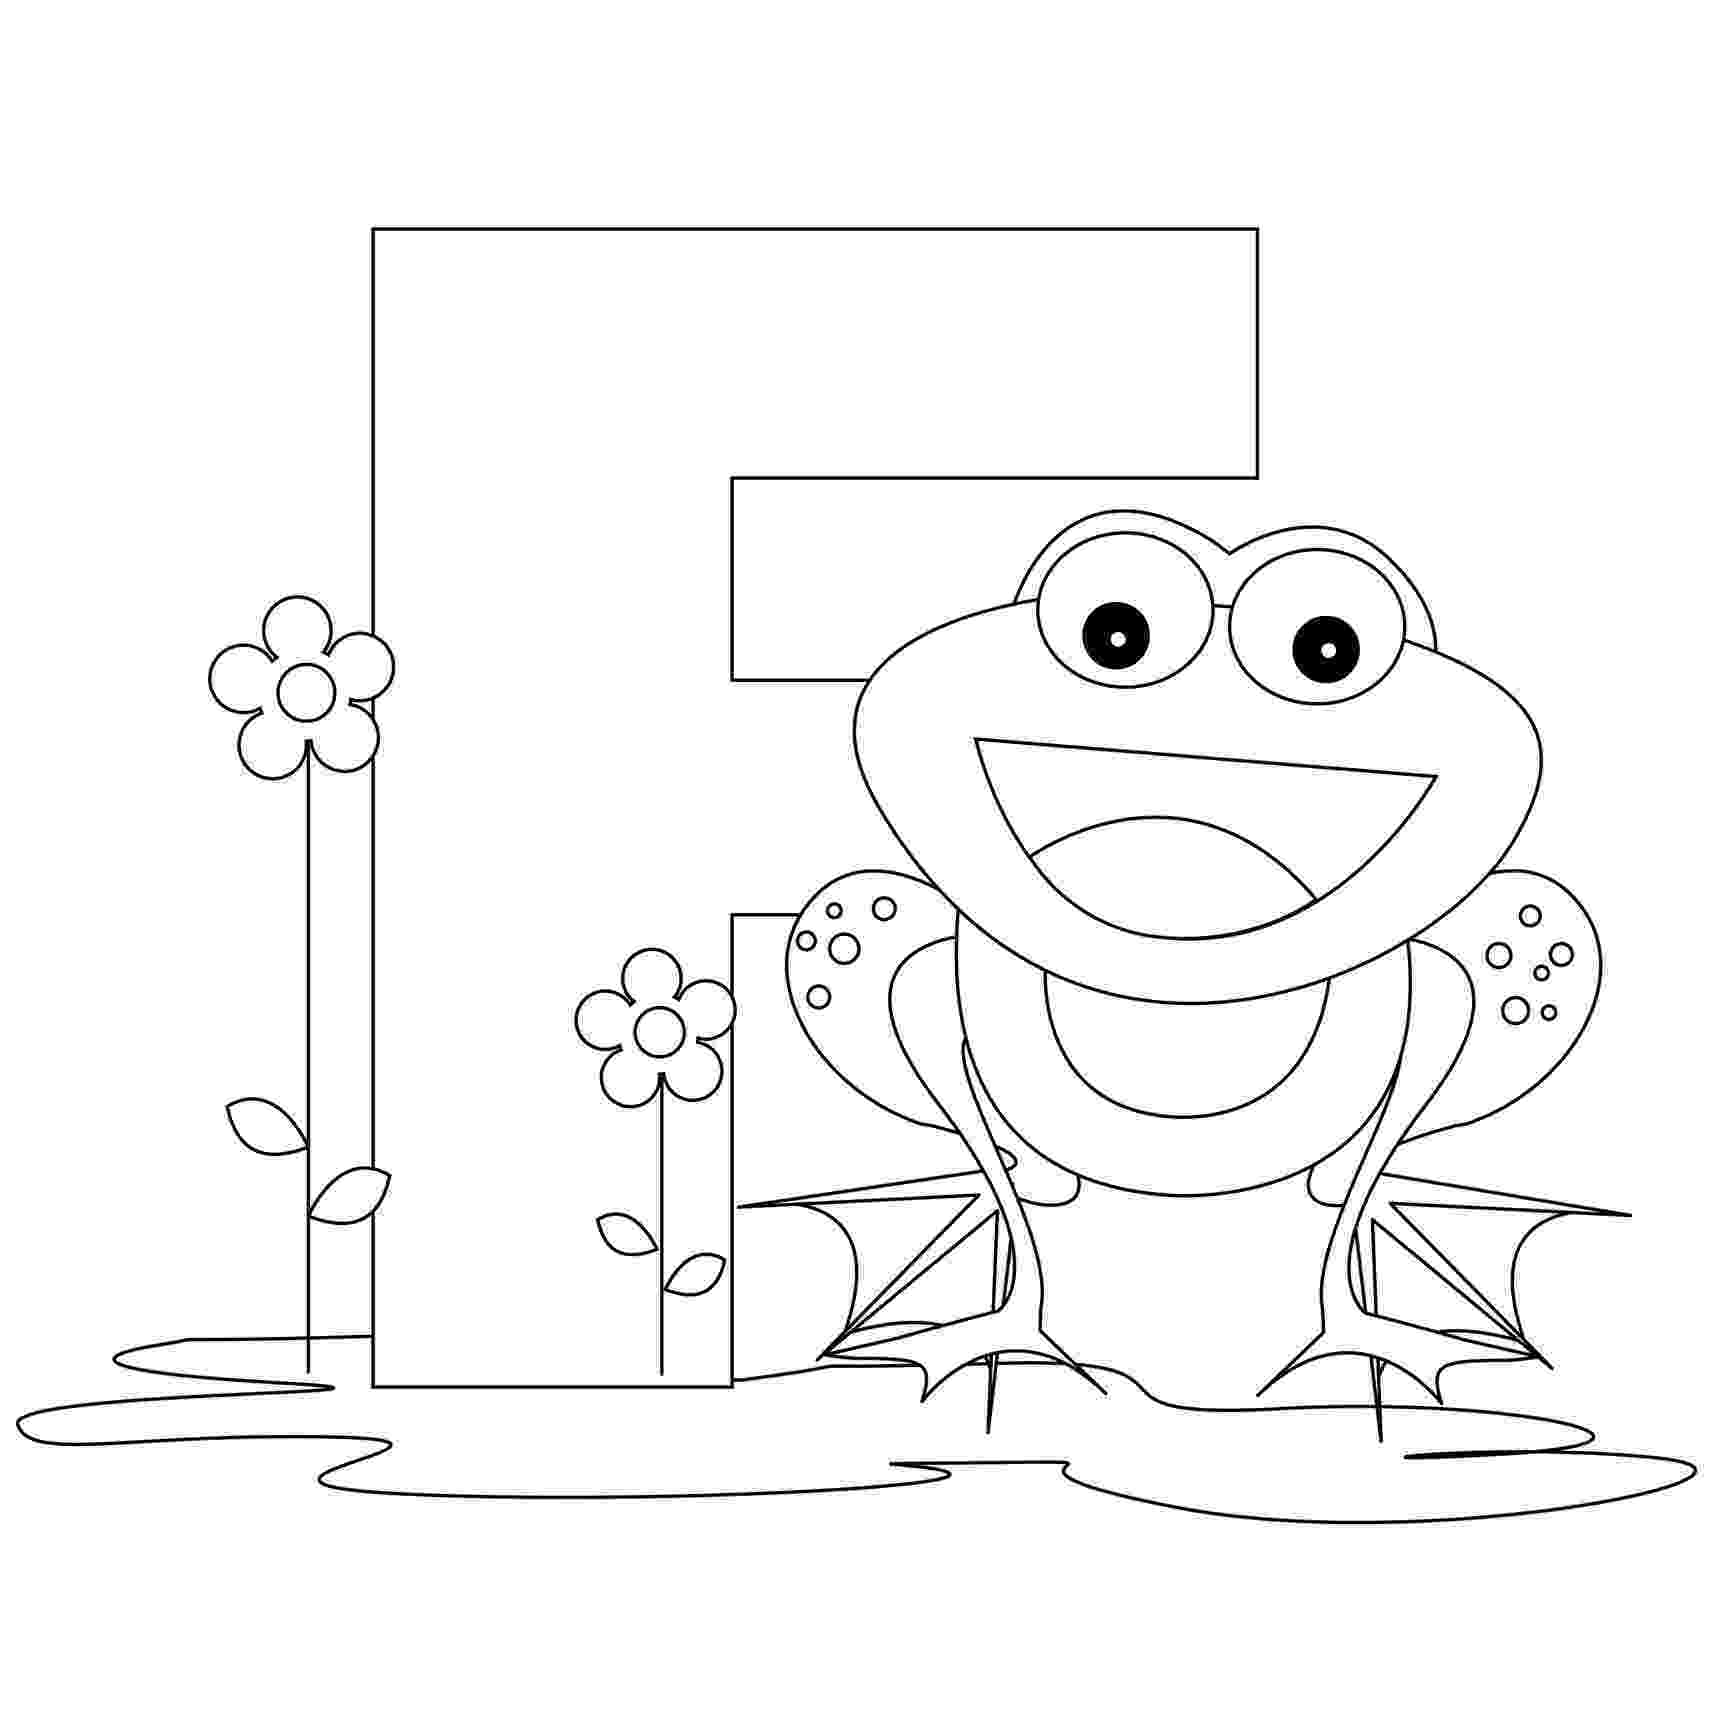 coloring alphabet letters free printable alphabet coloring pages for kids best letters alphabet coloring